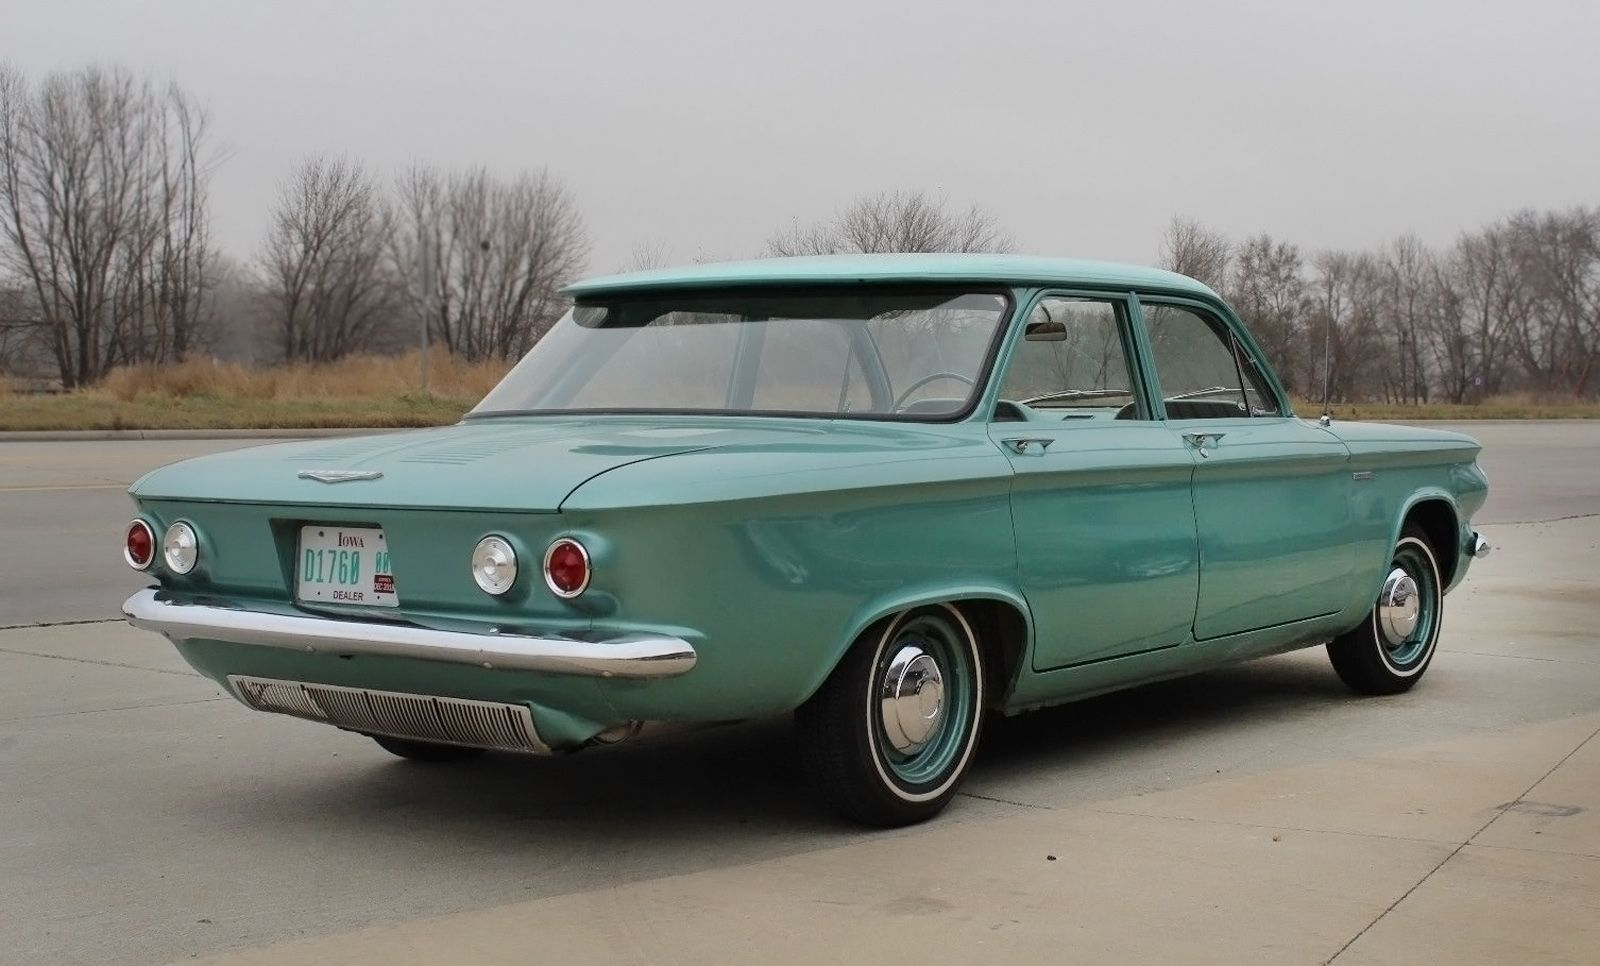 Rust Free Survivor 1961 Chevrolet Corvair 500 Chevrolet Corvair Classic Cars Chevy Corvair